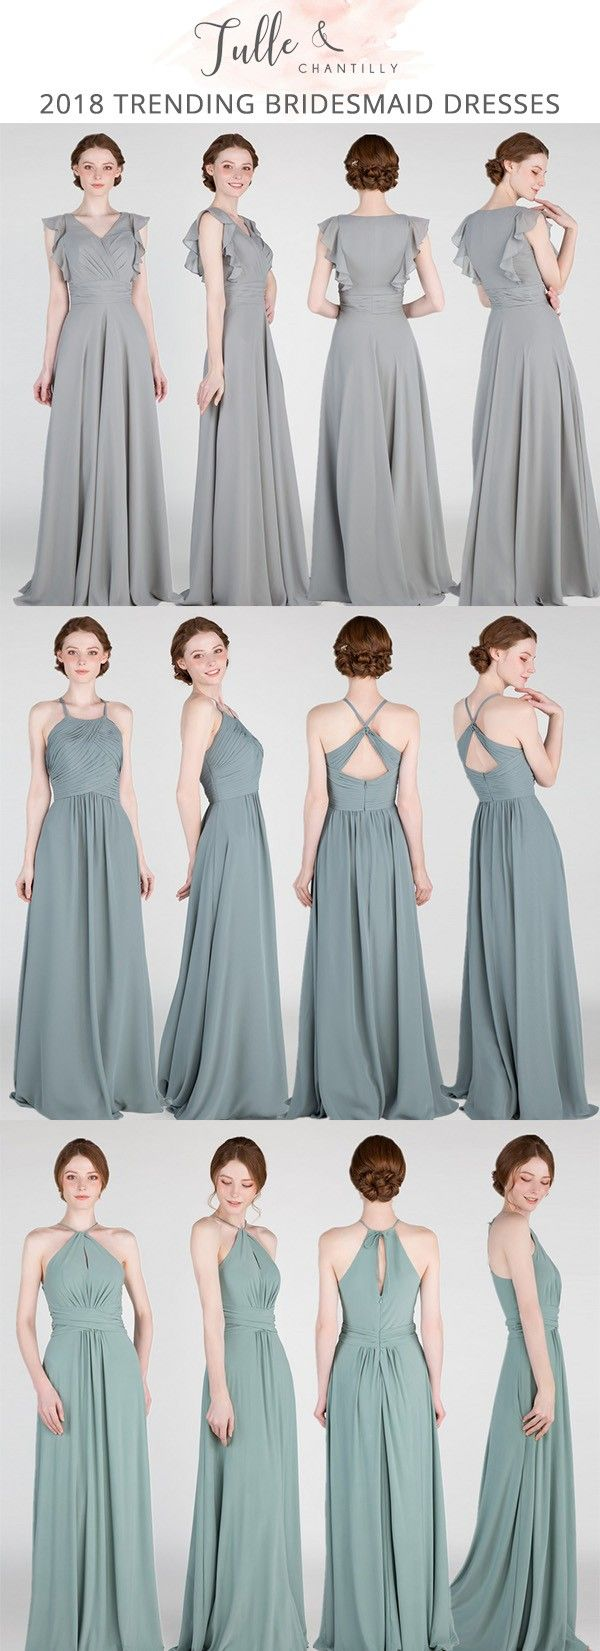 135 best Bridesmaid Dresses images on Pinterest | Annabelle dress ...